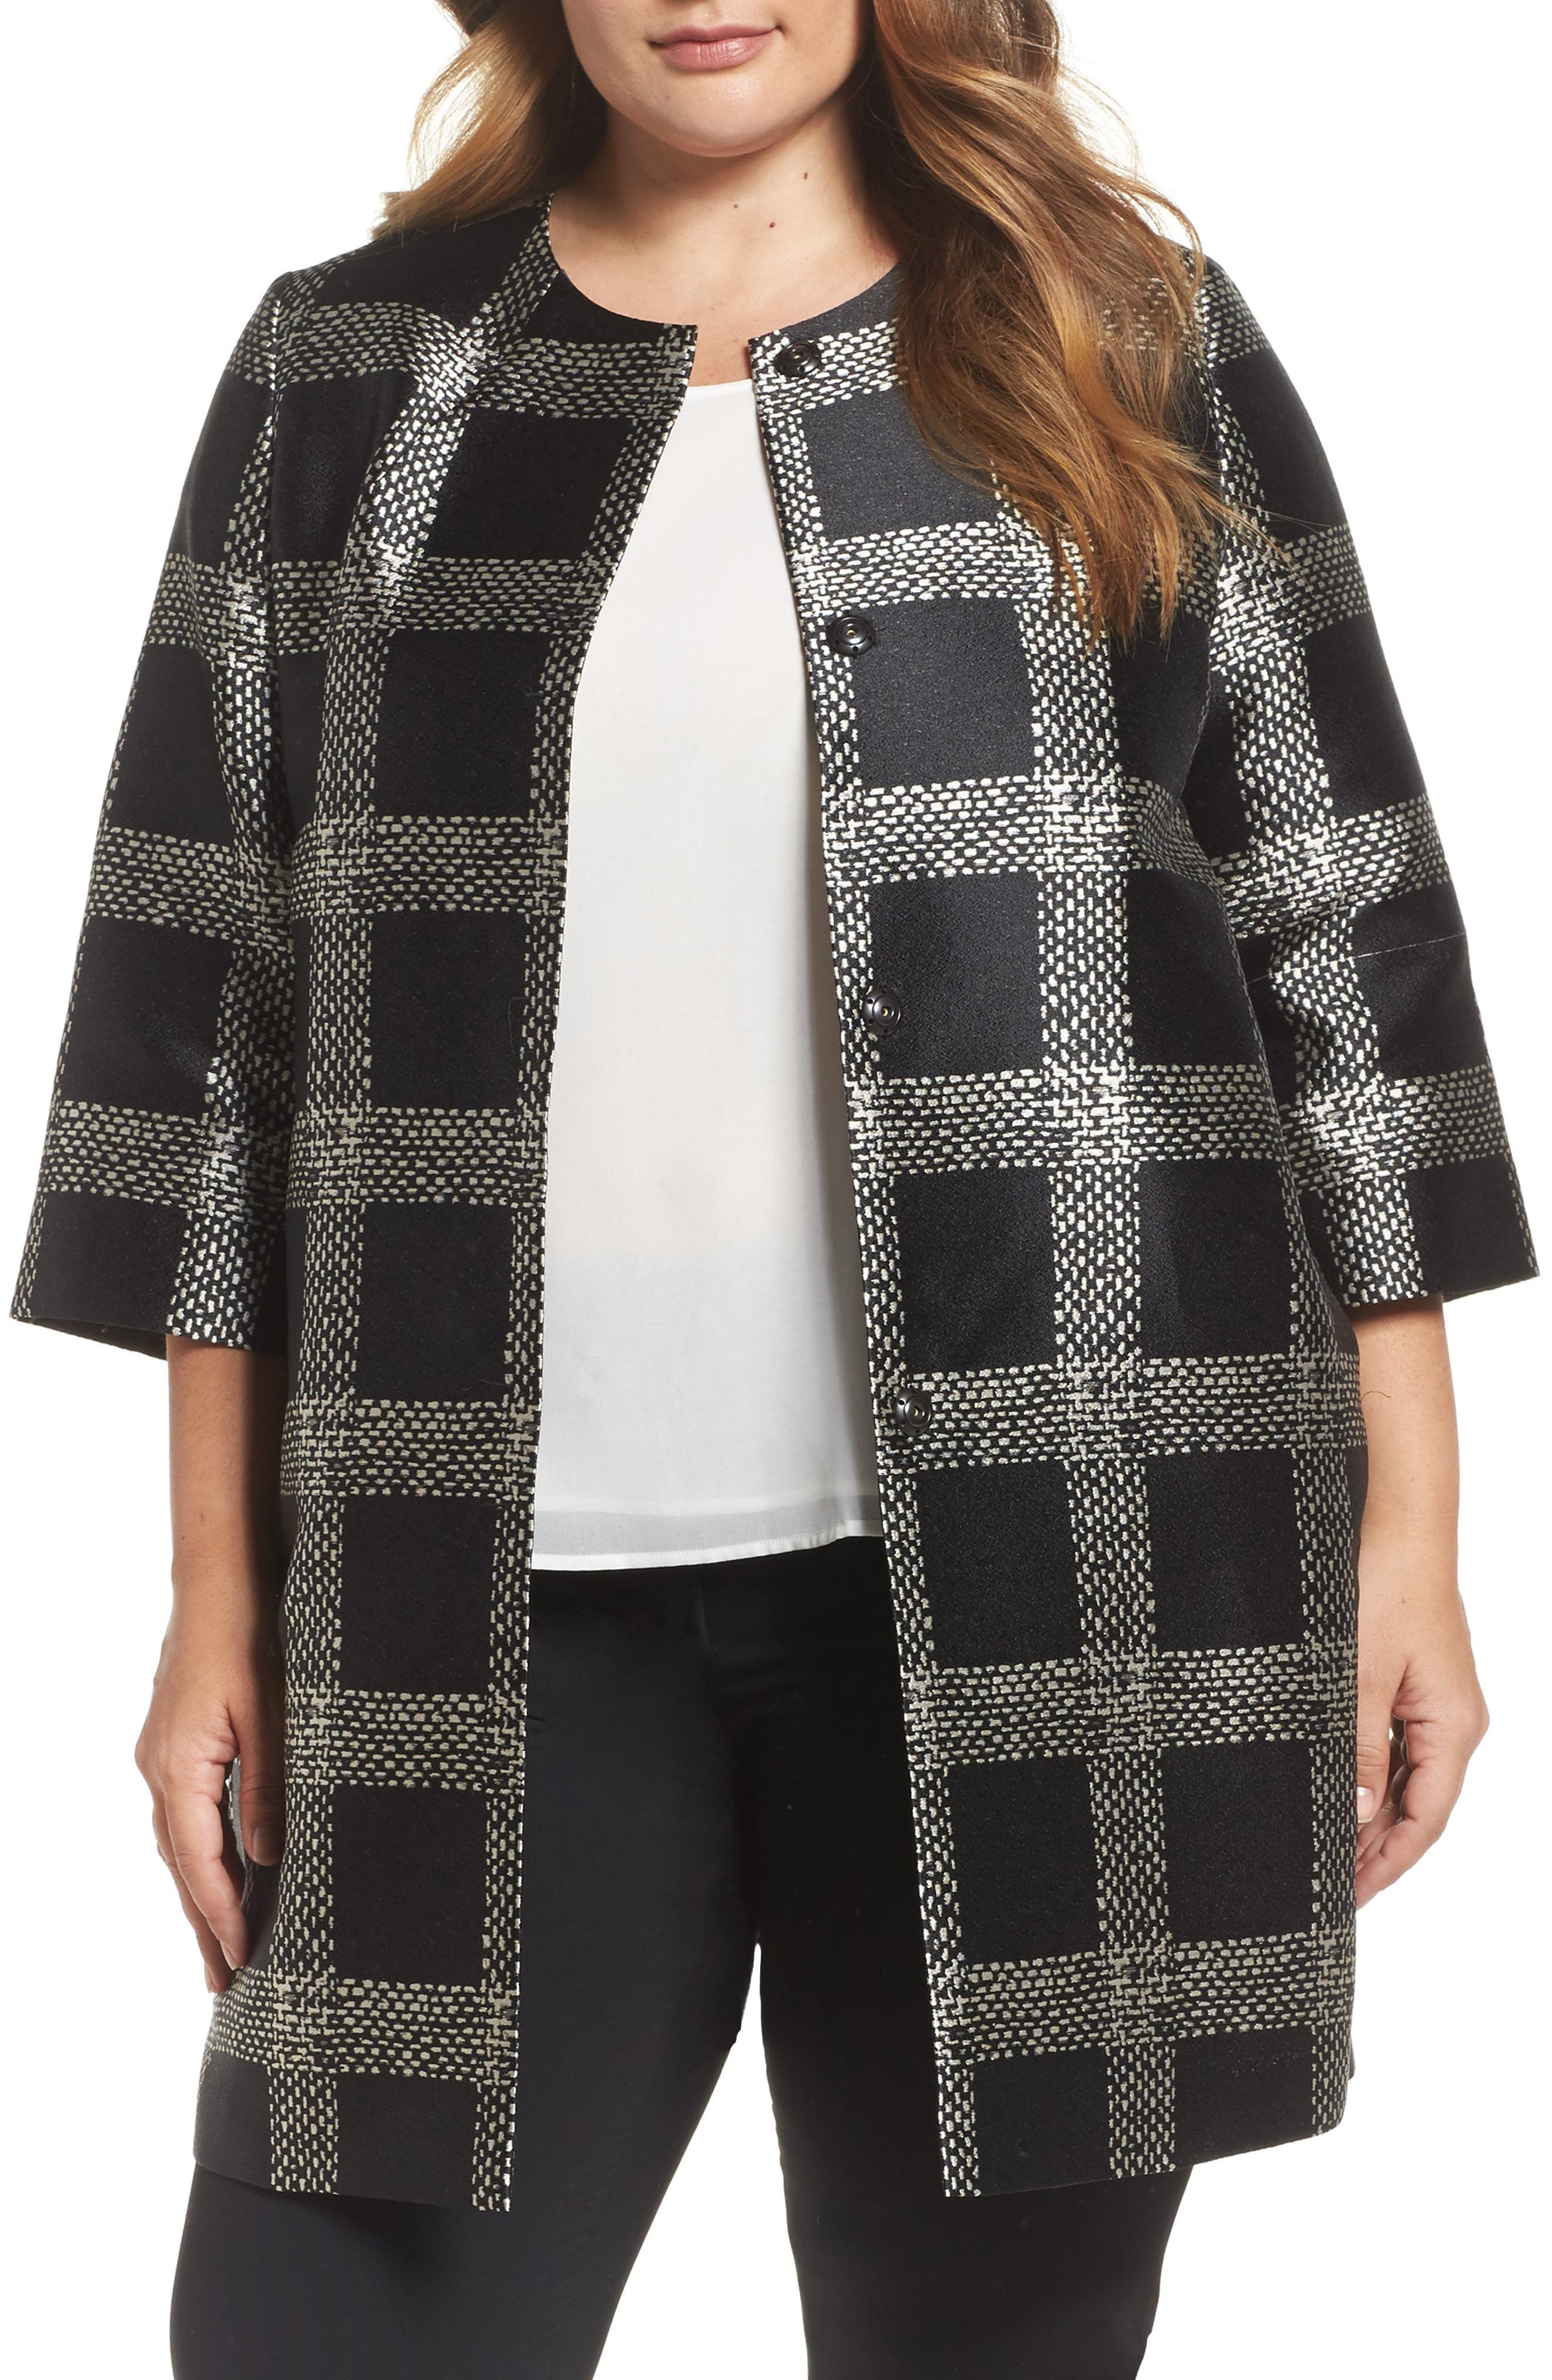 Noa Plaid Topper,                             Main thumbnail 1, color,                             Black